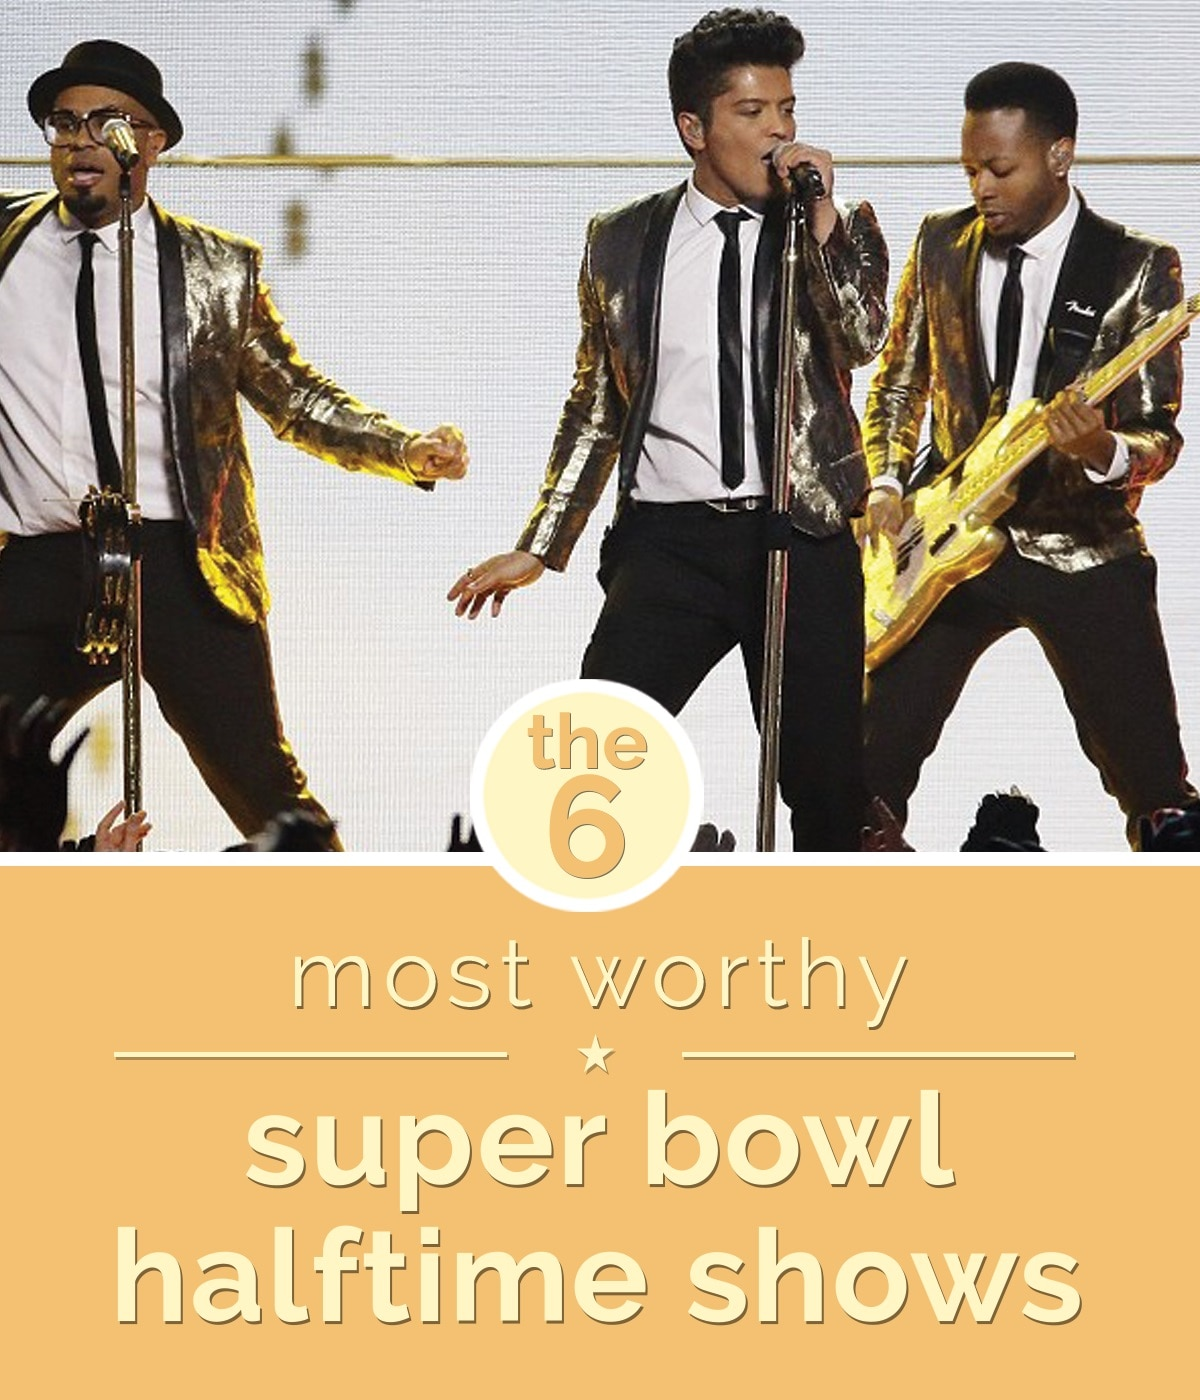 life-super-bowl-halftime-shows